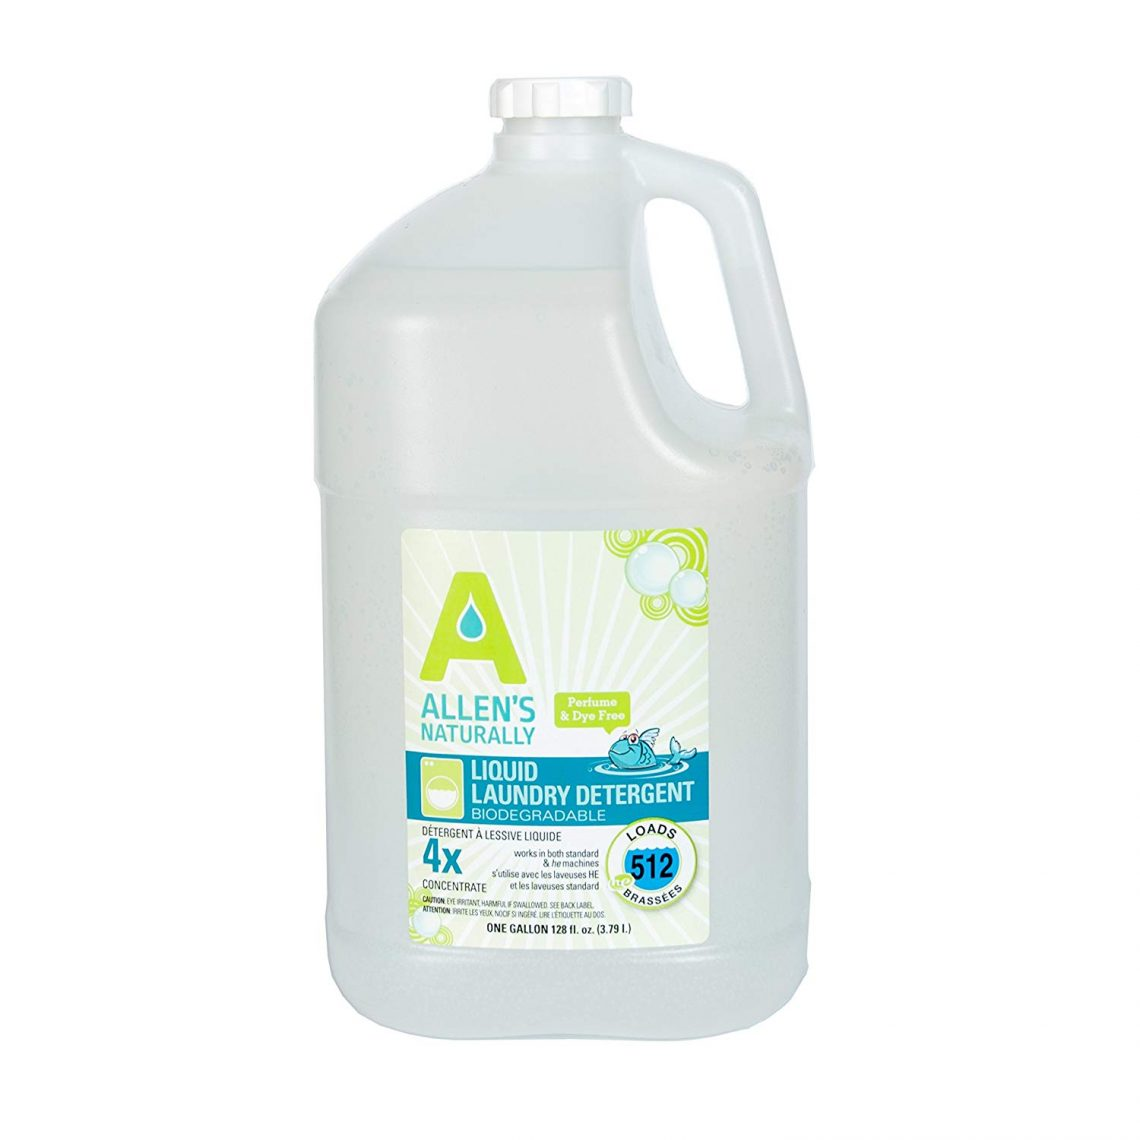 allen naturally chemical free laundry detergent